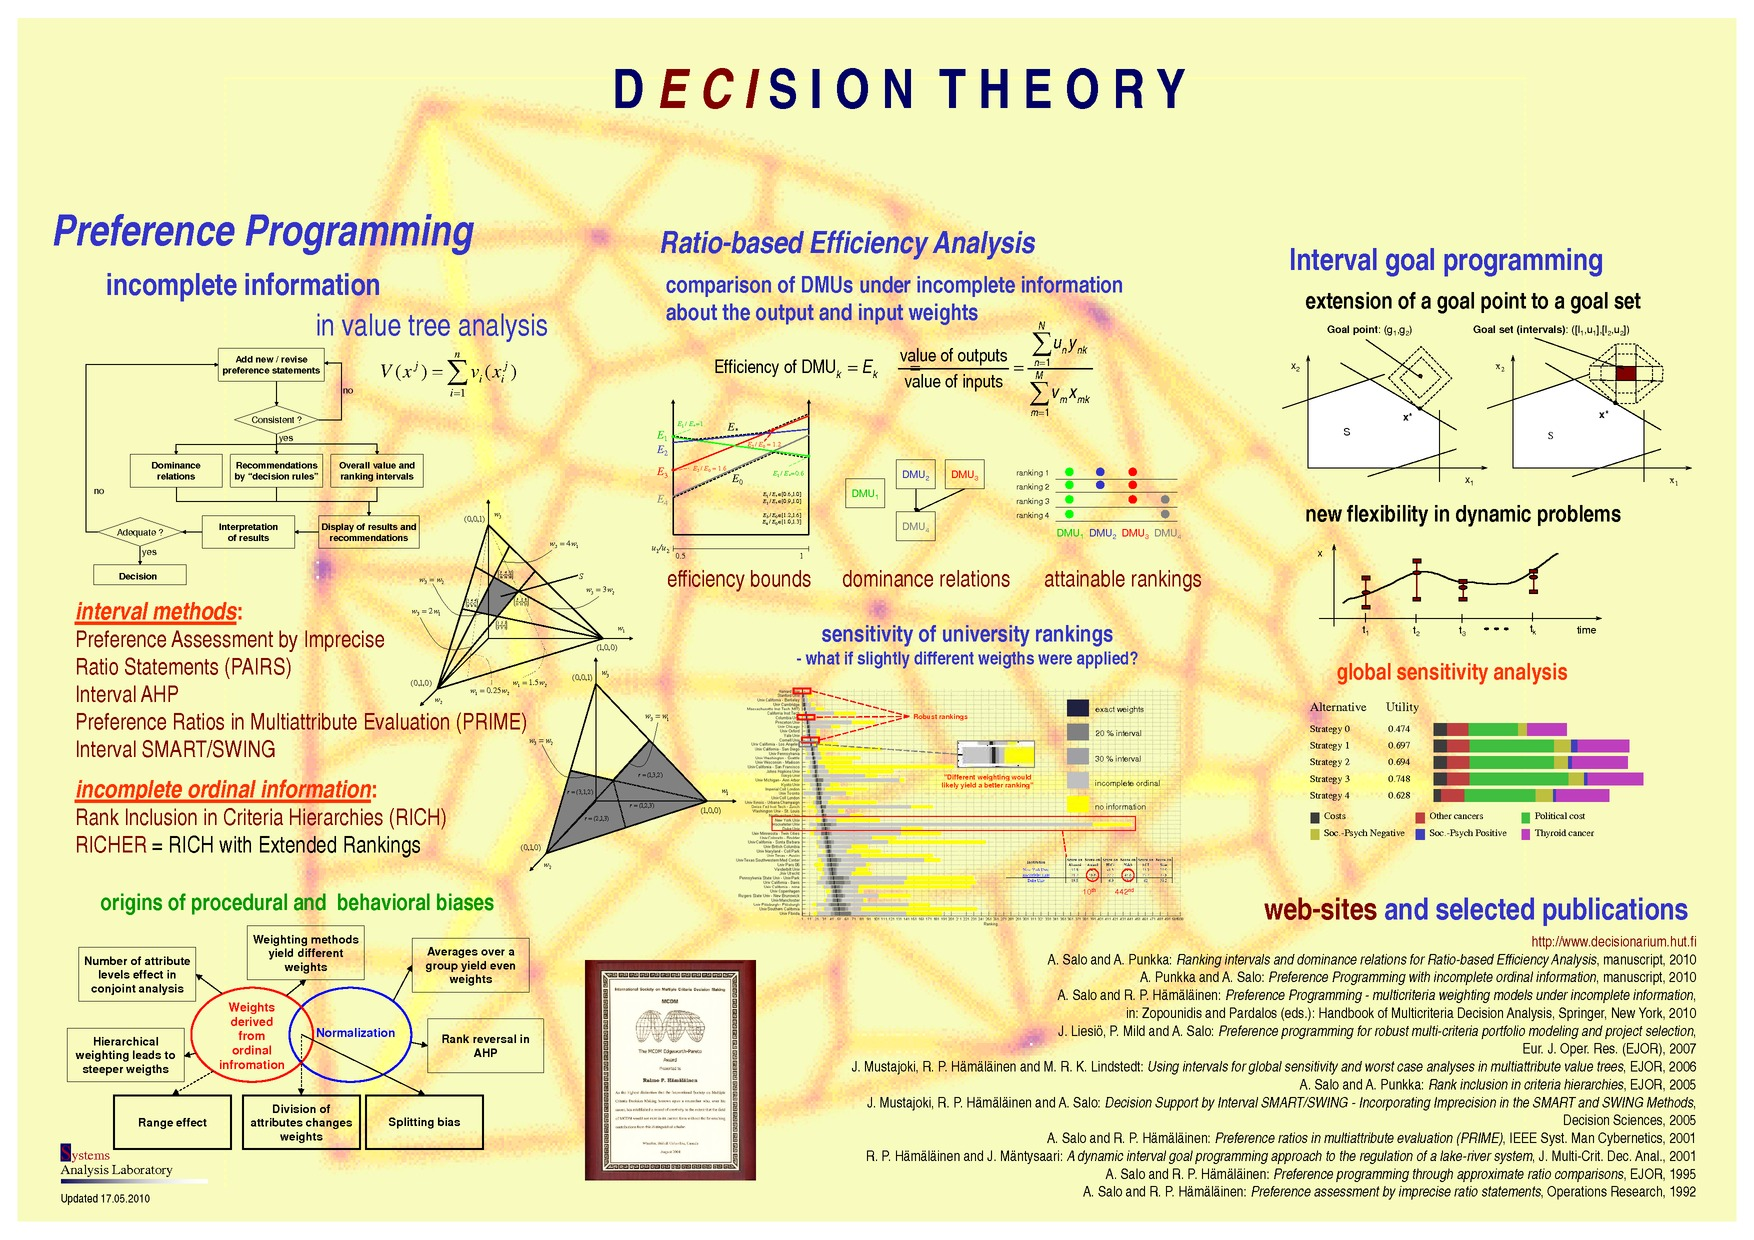 decision theory Decision theory includes work by philosophers, social scientists, mathematicians and statisticians that addresses how people make or should make decisions offshoots in political science include rational choice theory (and criticisms thereof), game theory, and social choice theory.